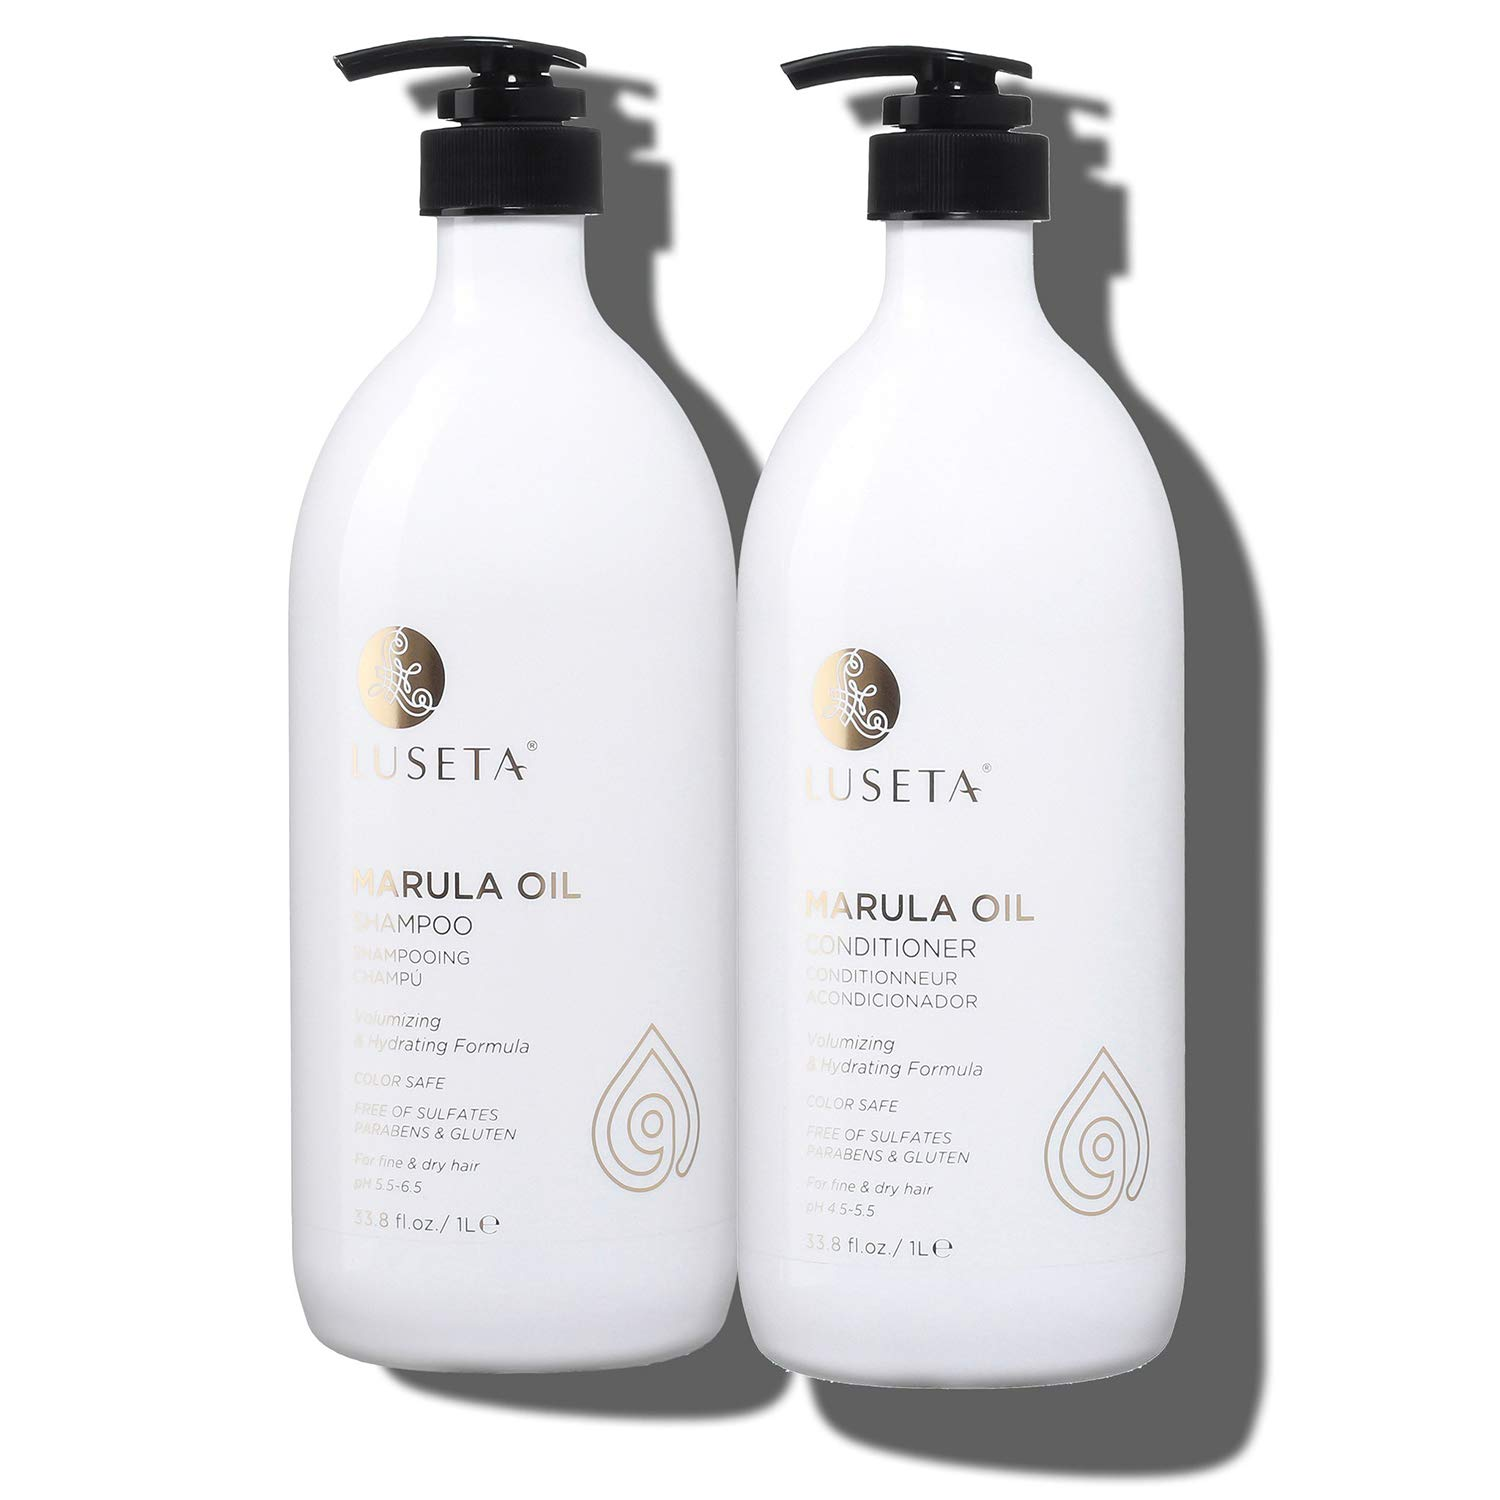 Luseta Marula Oil Hydrating Hair Shampoo and Conditioner Duo Set - Salon Quality Shampoo that Cleanses, Protects, Nourishes and Conditions, Sulfate-free, 2 x 33.8 Oz by L LUSETA